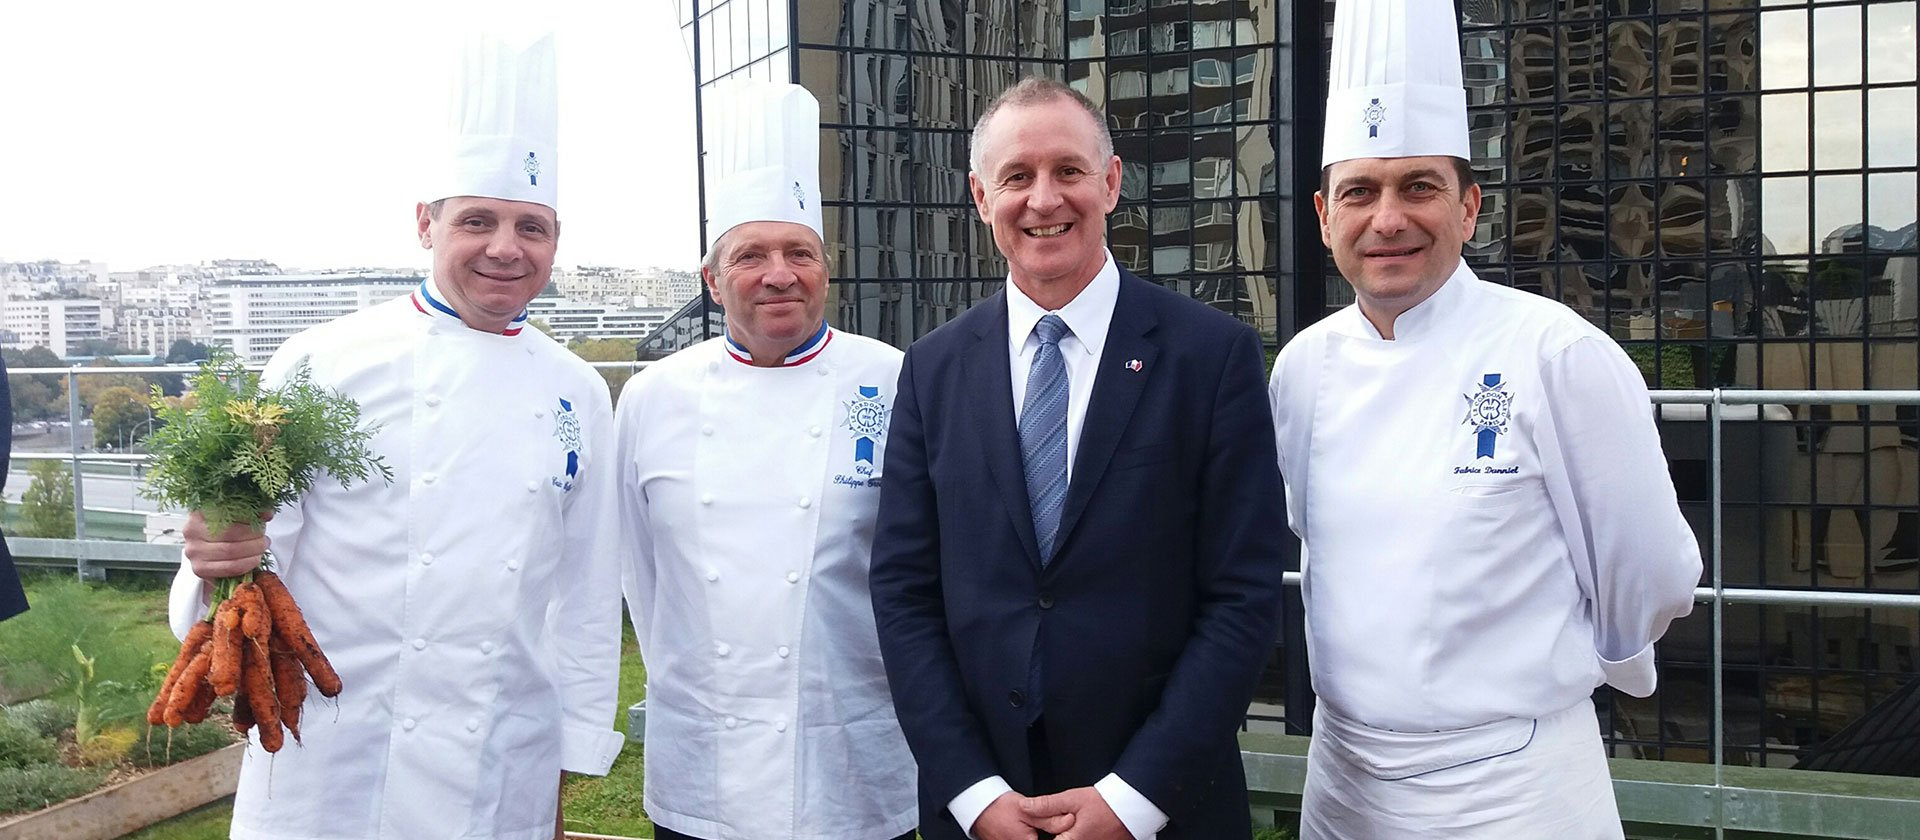 South Australia's Premier visits Le Cordon Bleu Paris